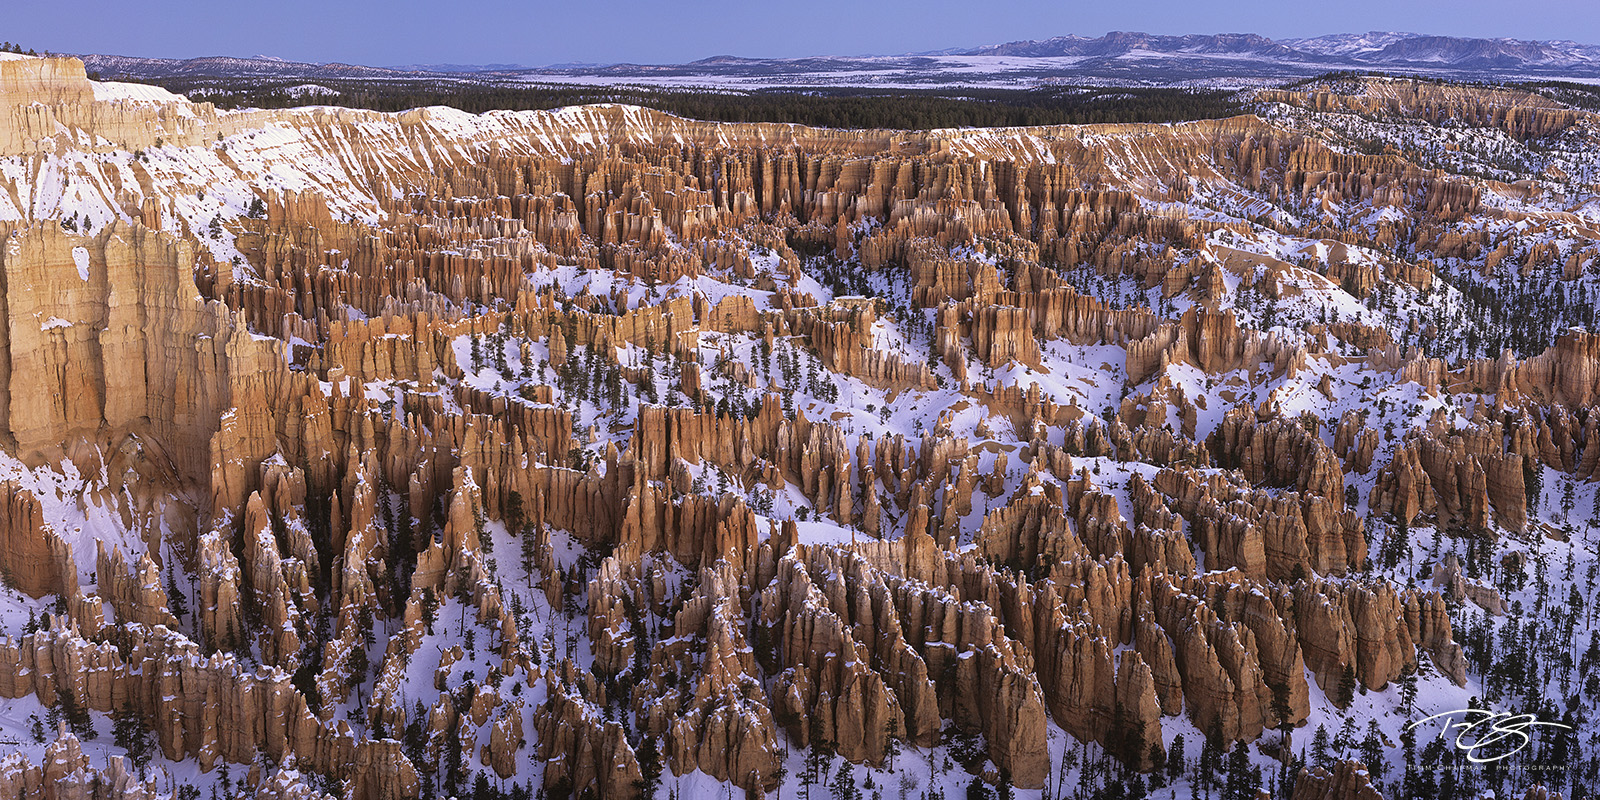 Bryce Canyon, amphitheatre, amphitheater, snow, winter, bryce canyon covered in snow, snowfall, wintertime, canyon, bryce, bryce canyon, bryce canyon national park, petrified sand dunes, badlands, hoo